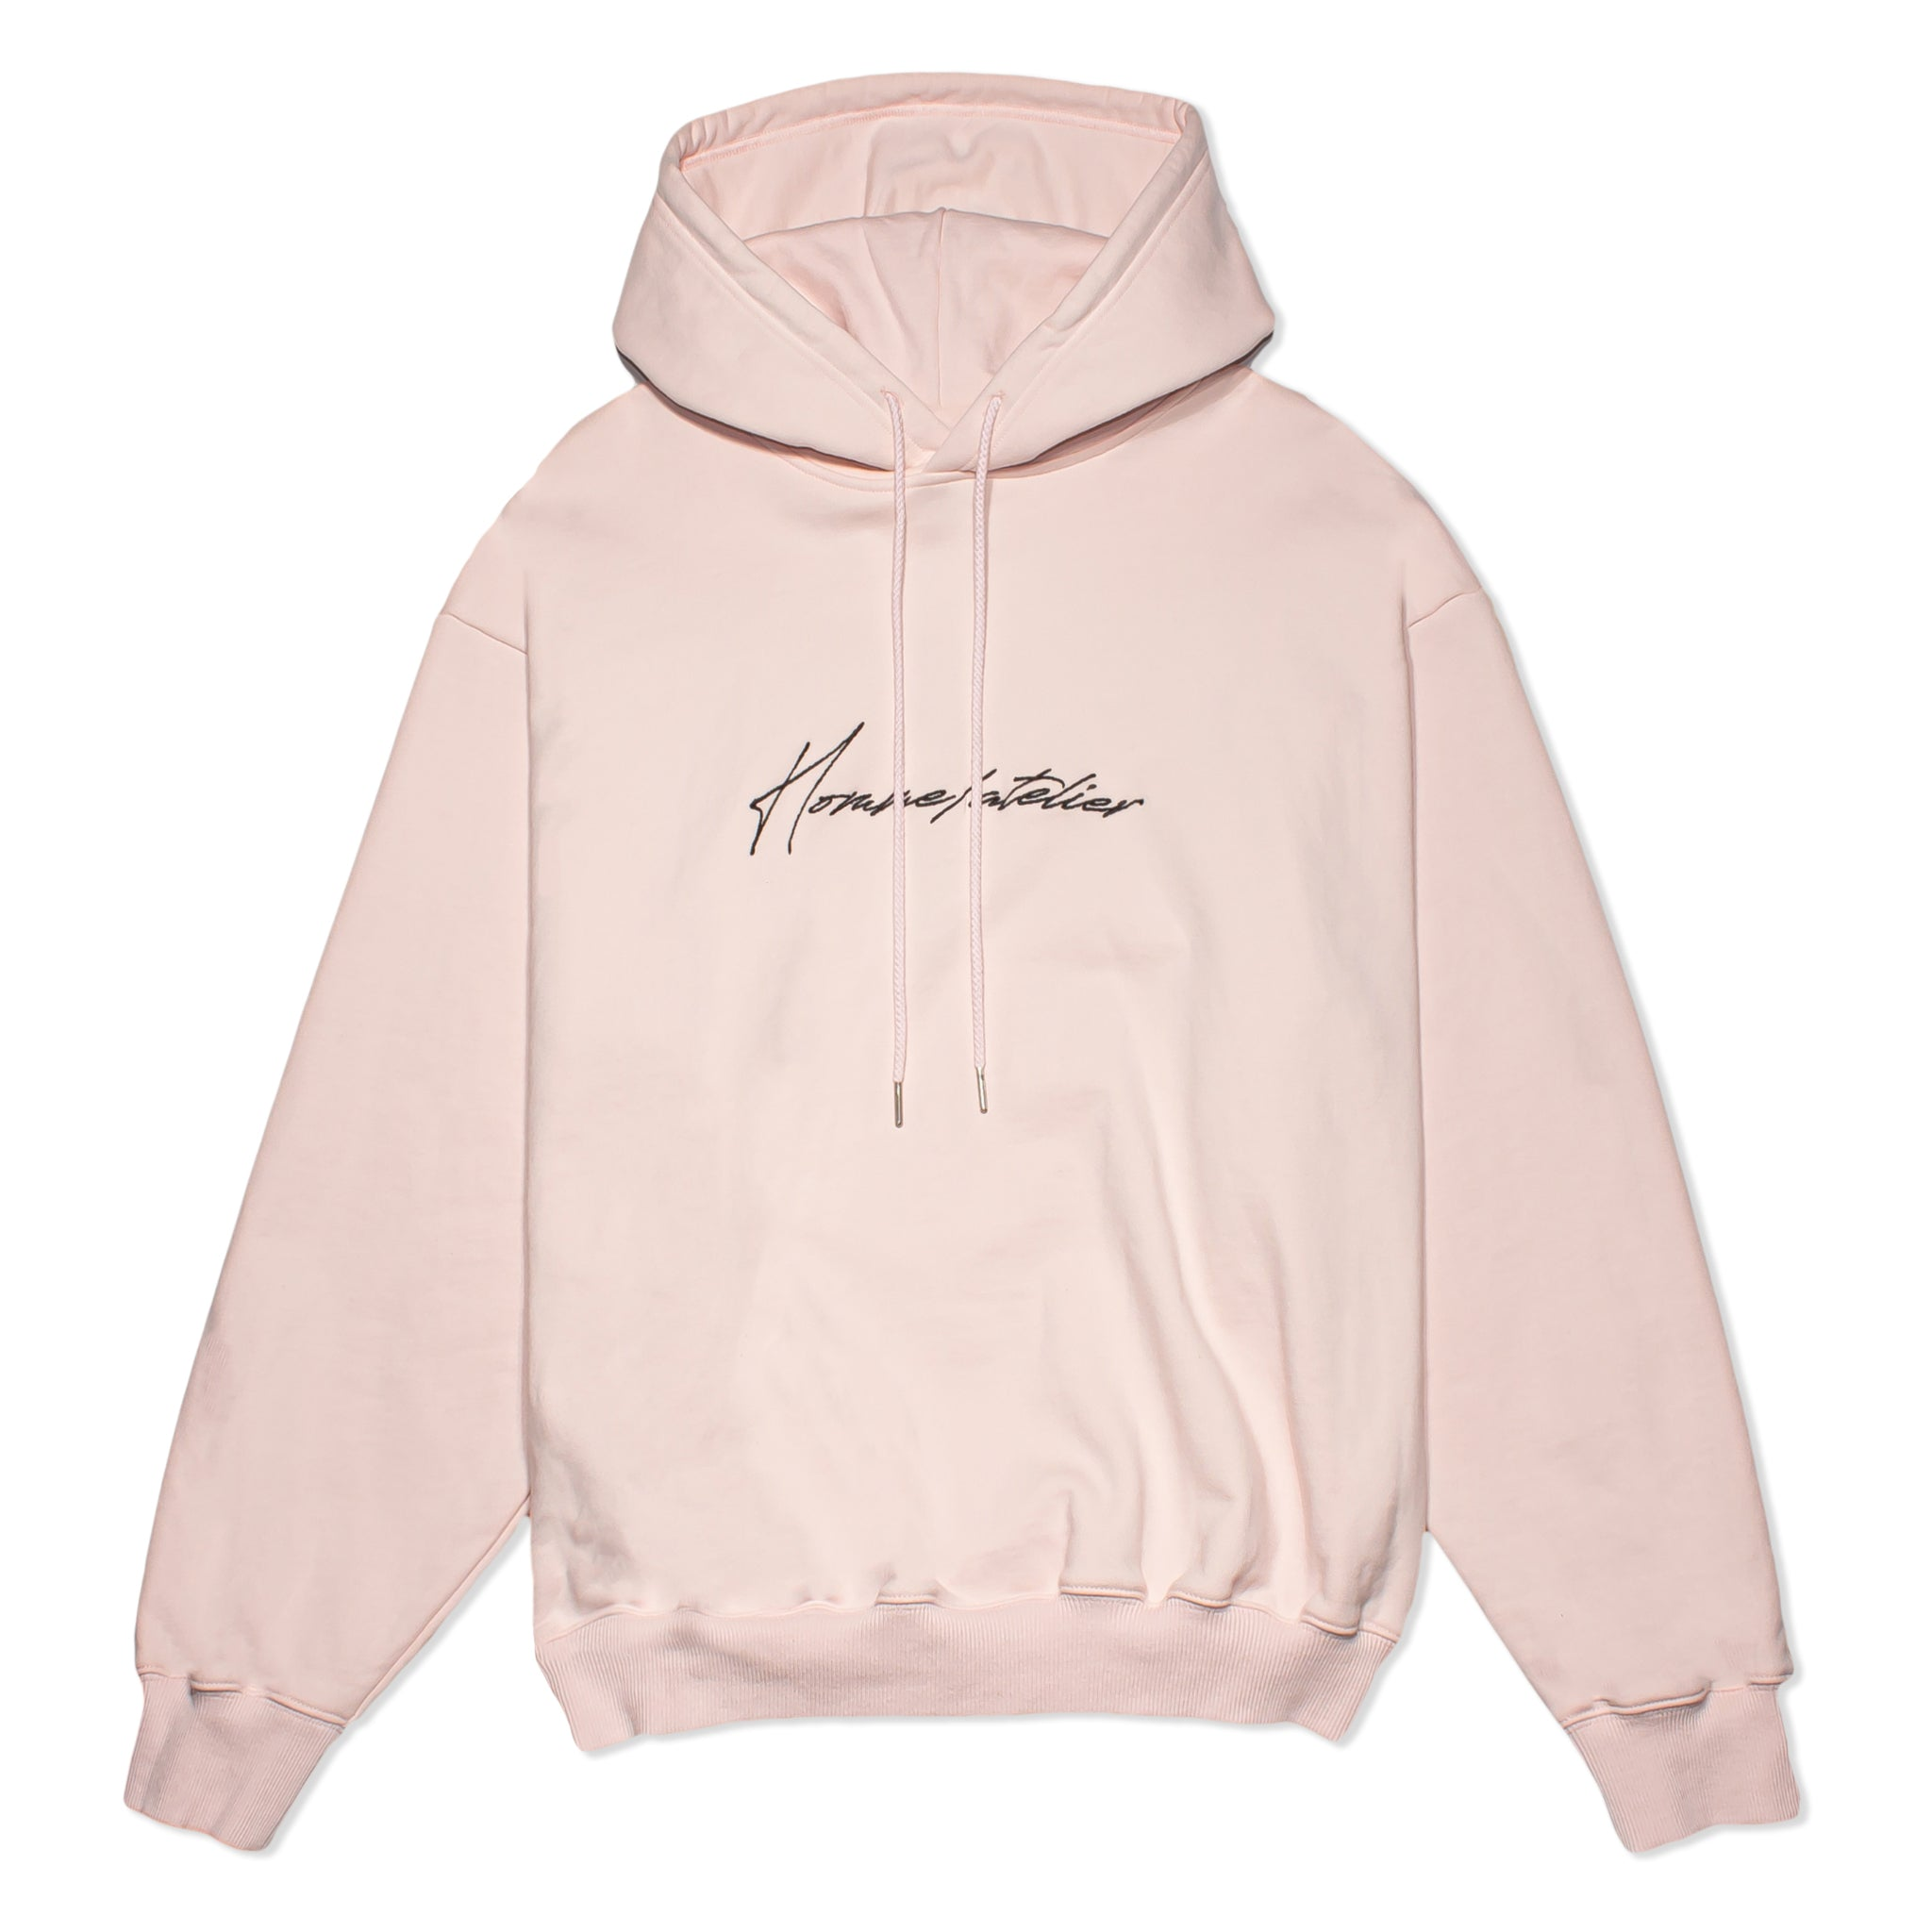 HOMME+ Atelier Embroidery Hoodie Pink